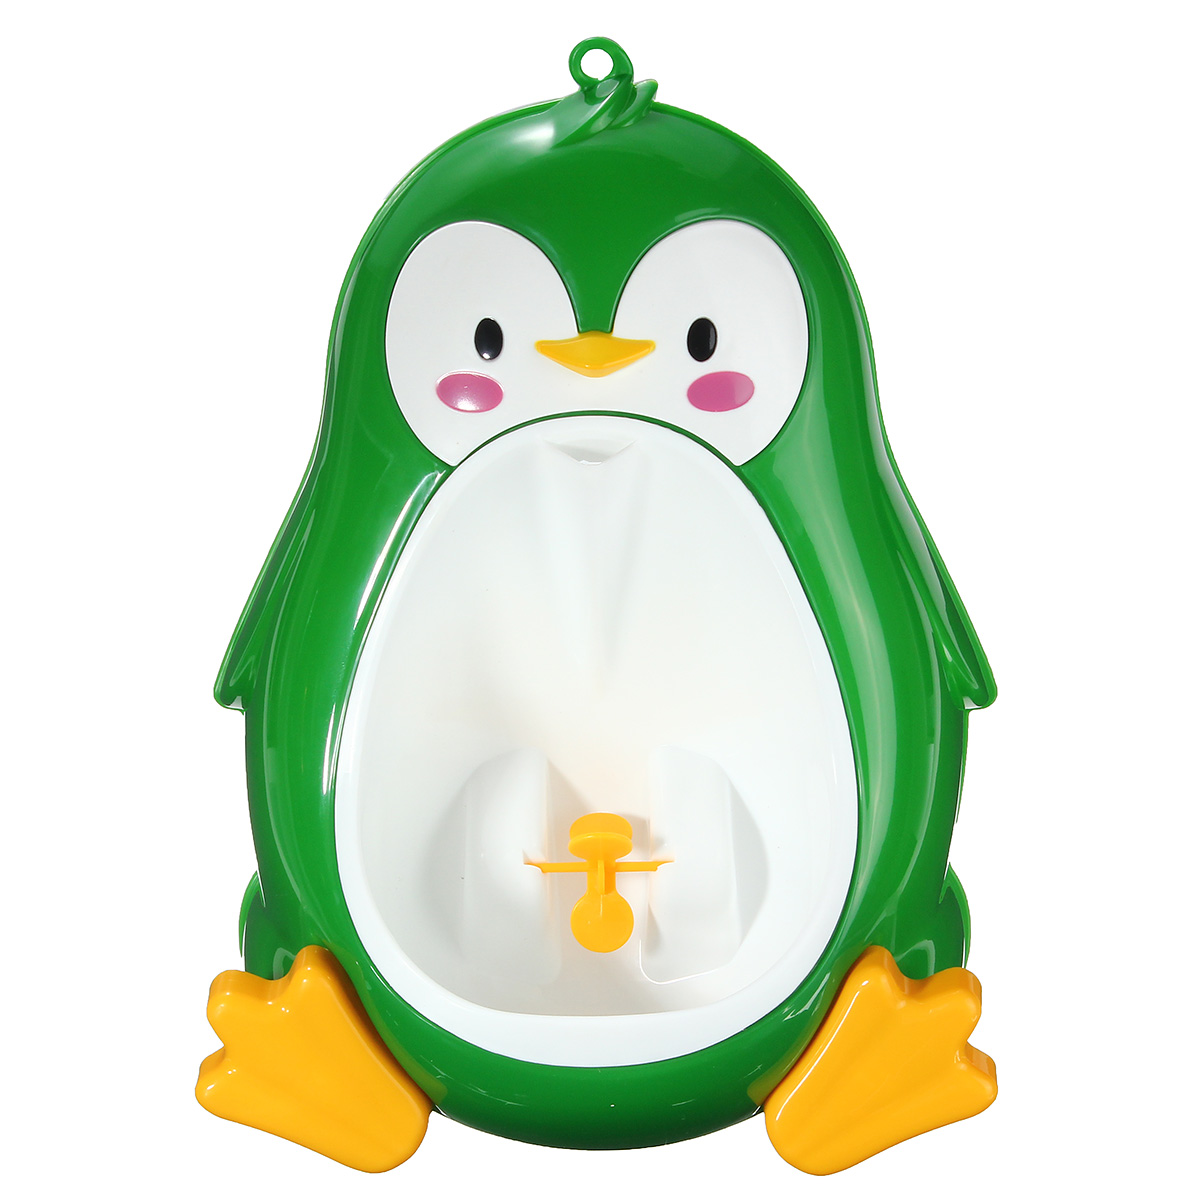 Cute Kids Children Potty Training Urinal Toilet Urine Train Froggy Potty for Children Kids Toddler Baby Boys Portable Plastic Male Urinals Pee Trainer Funny Aiming Tar